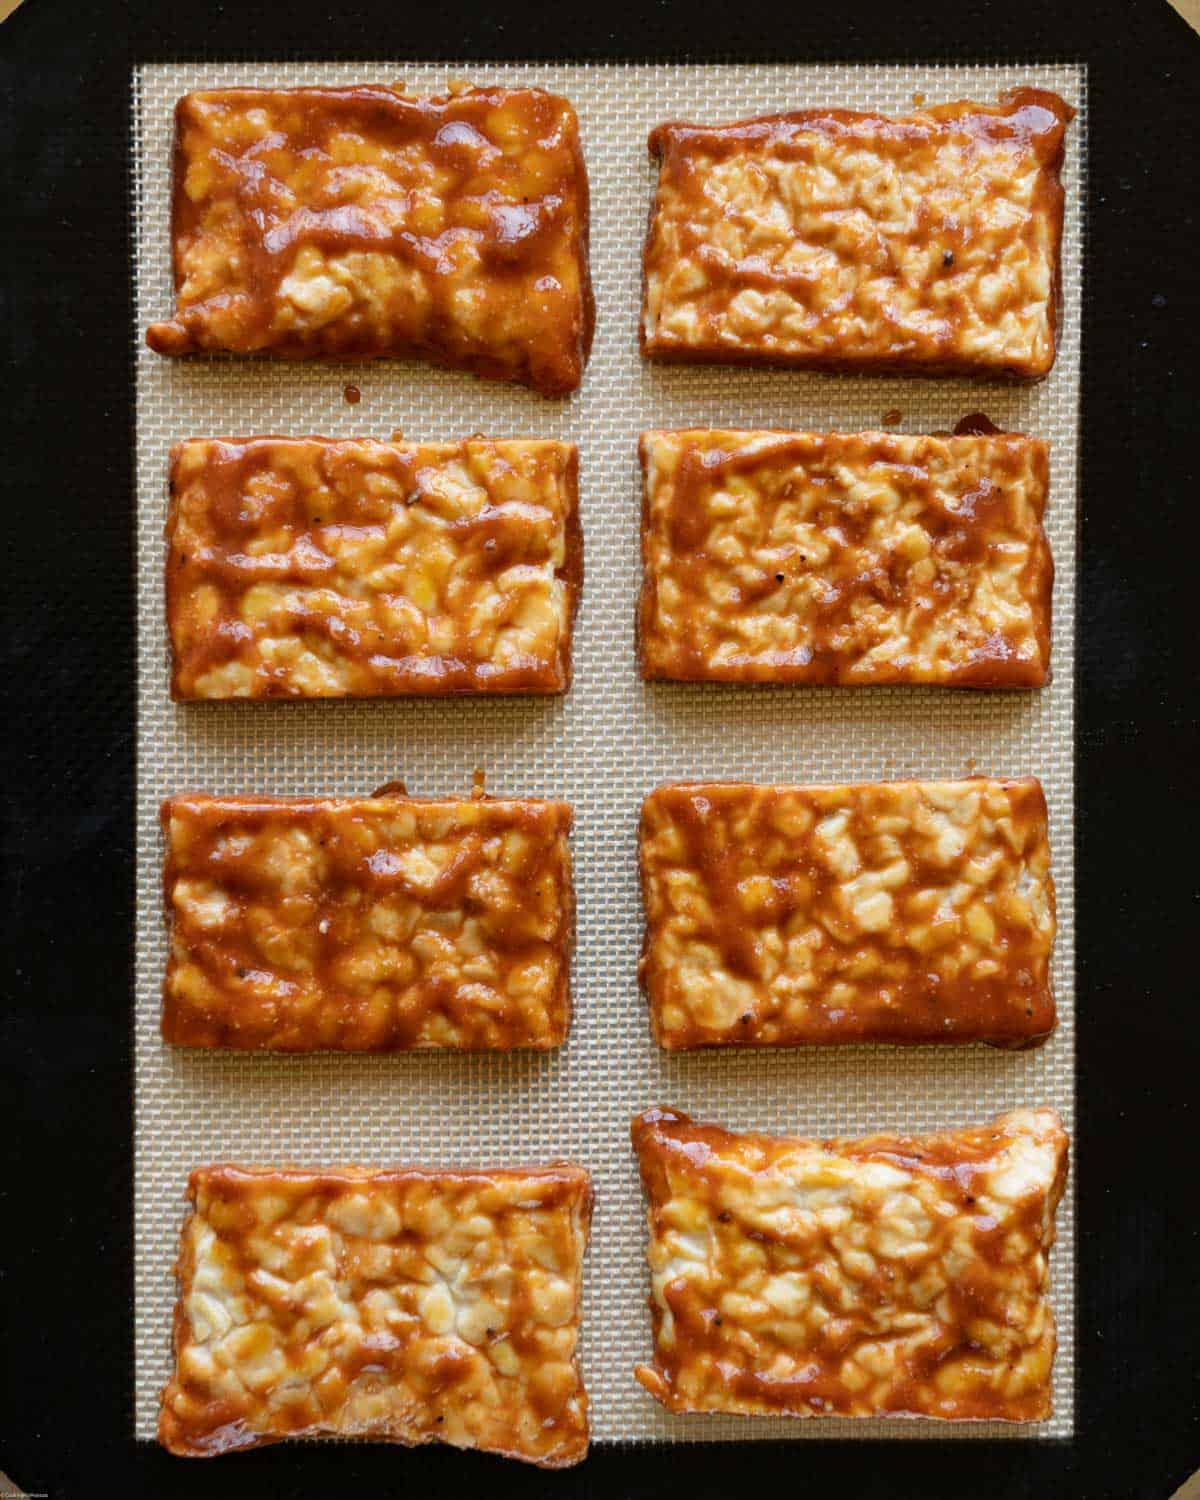 Marinated tempeh rectangles on a silicone baking mat.